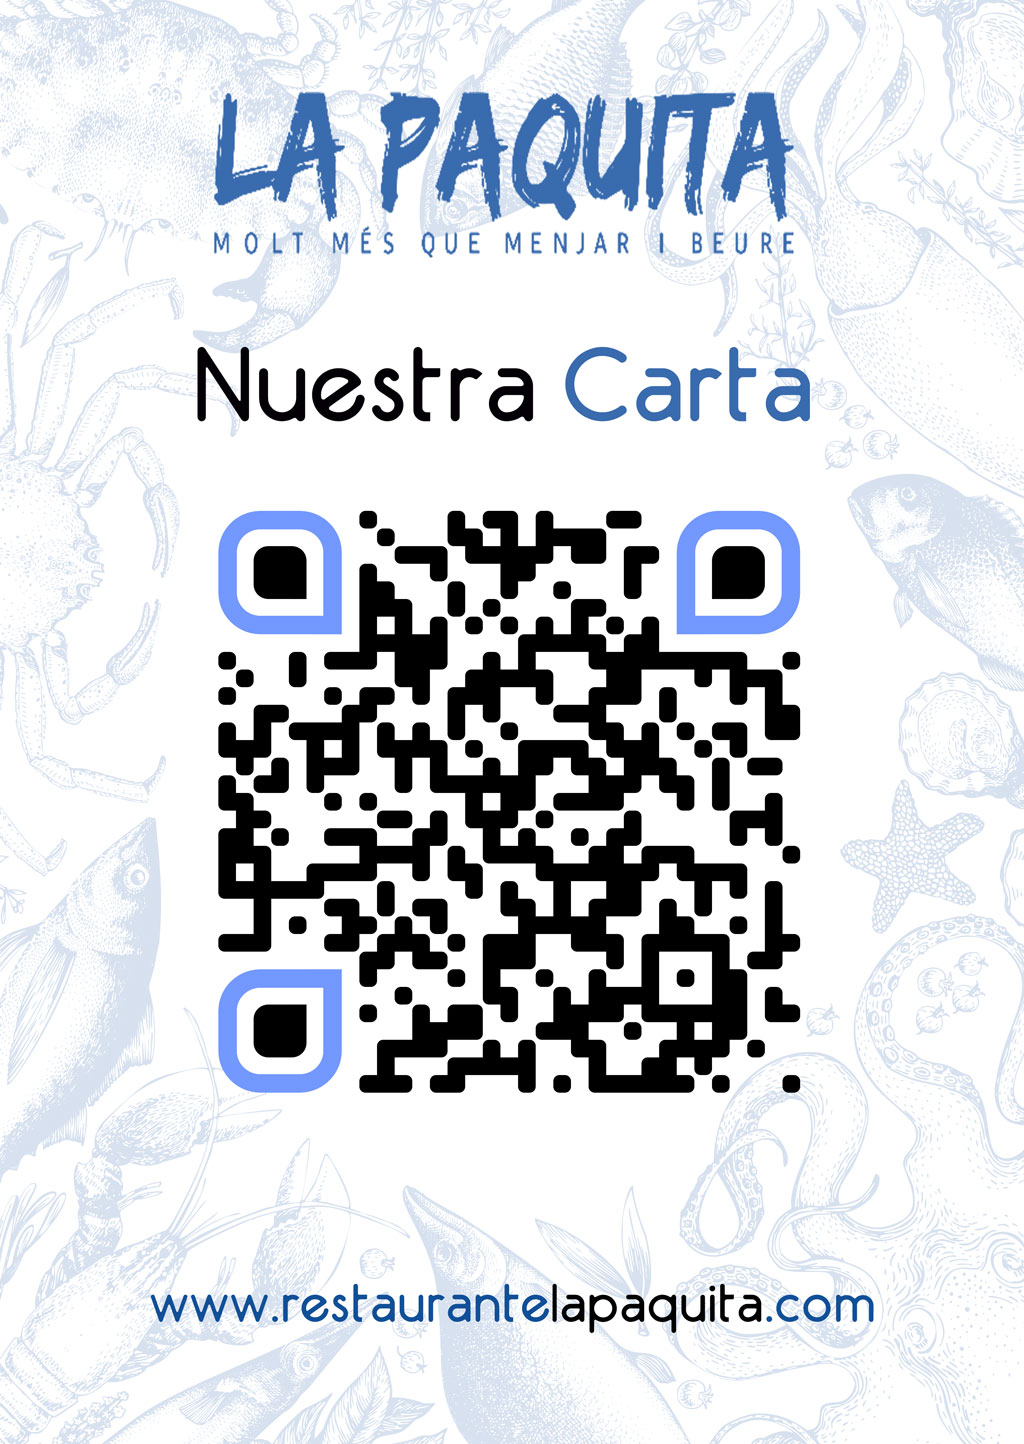 Ejemplo de QR tamaño cartel para carta digital de restaurante o bar